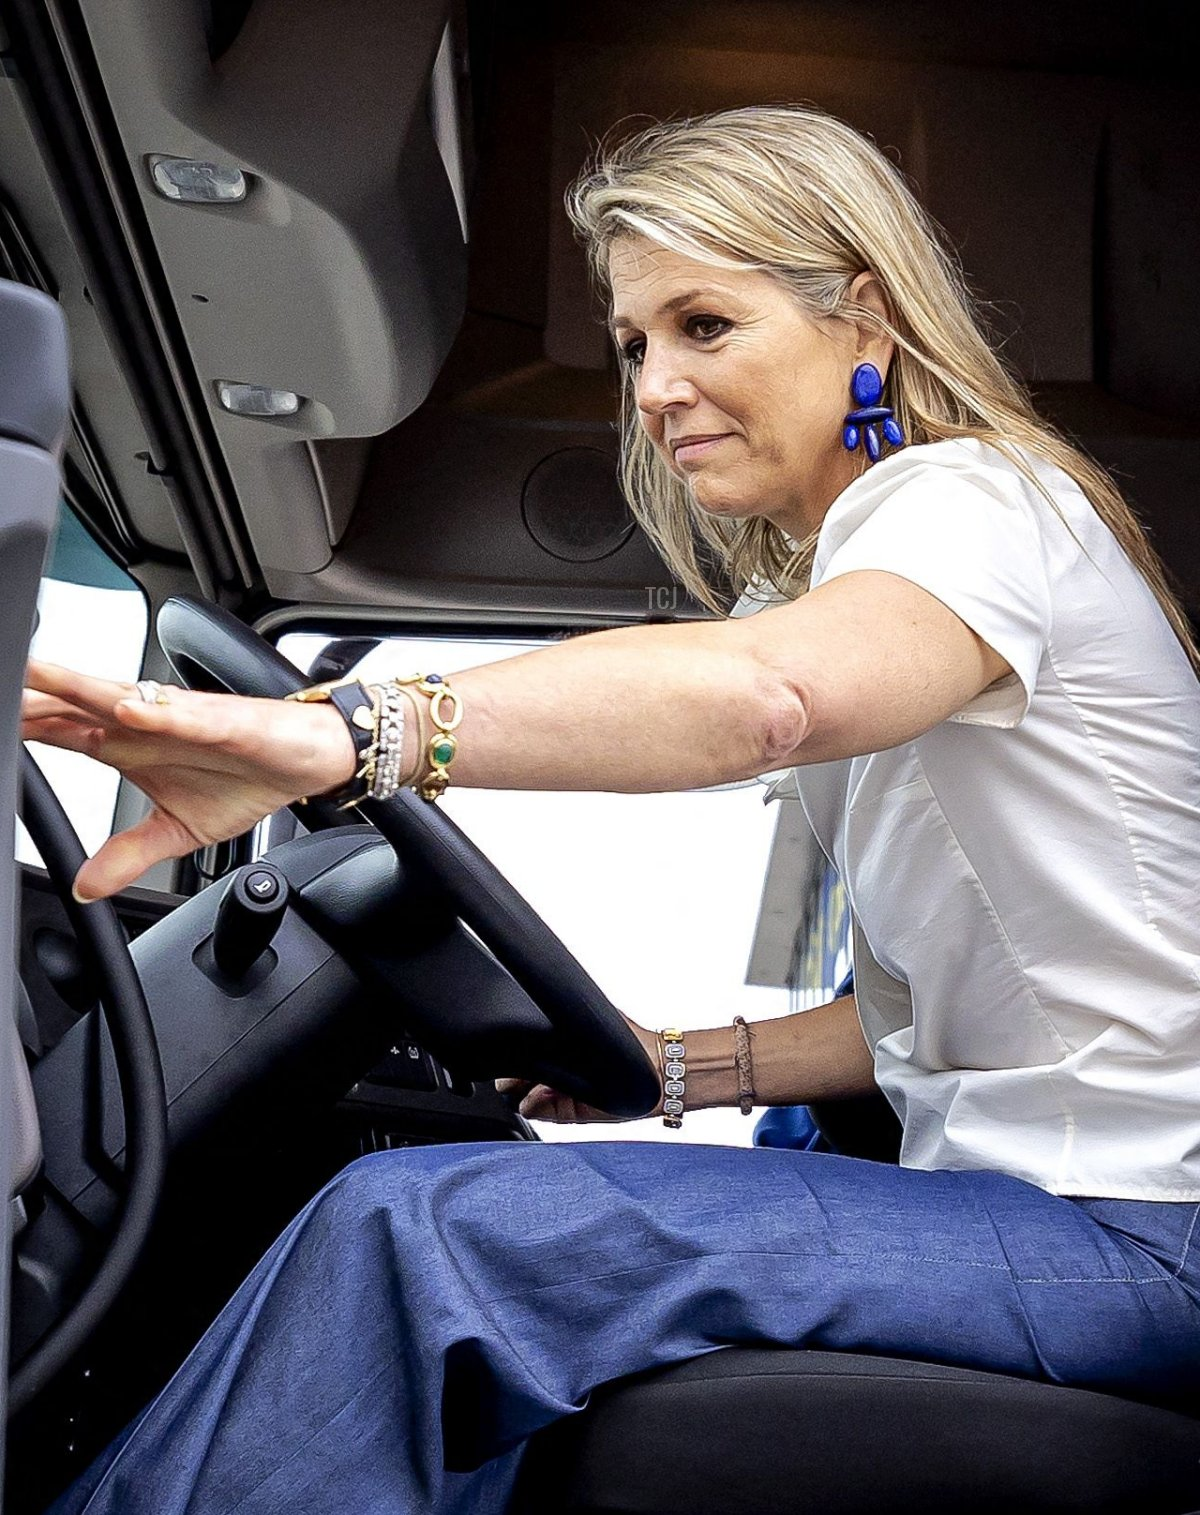 Dutch Queen Maxima drives a truck accompanied by a female instructor during a working visit to the Transport and Logistics sector in Nieuwegein, on July 14, 2021